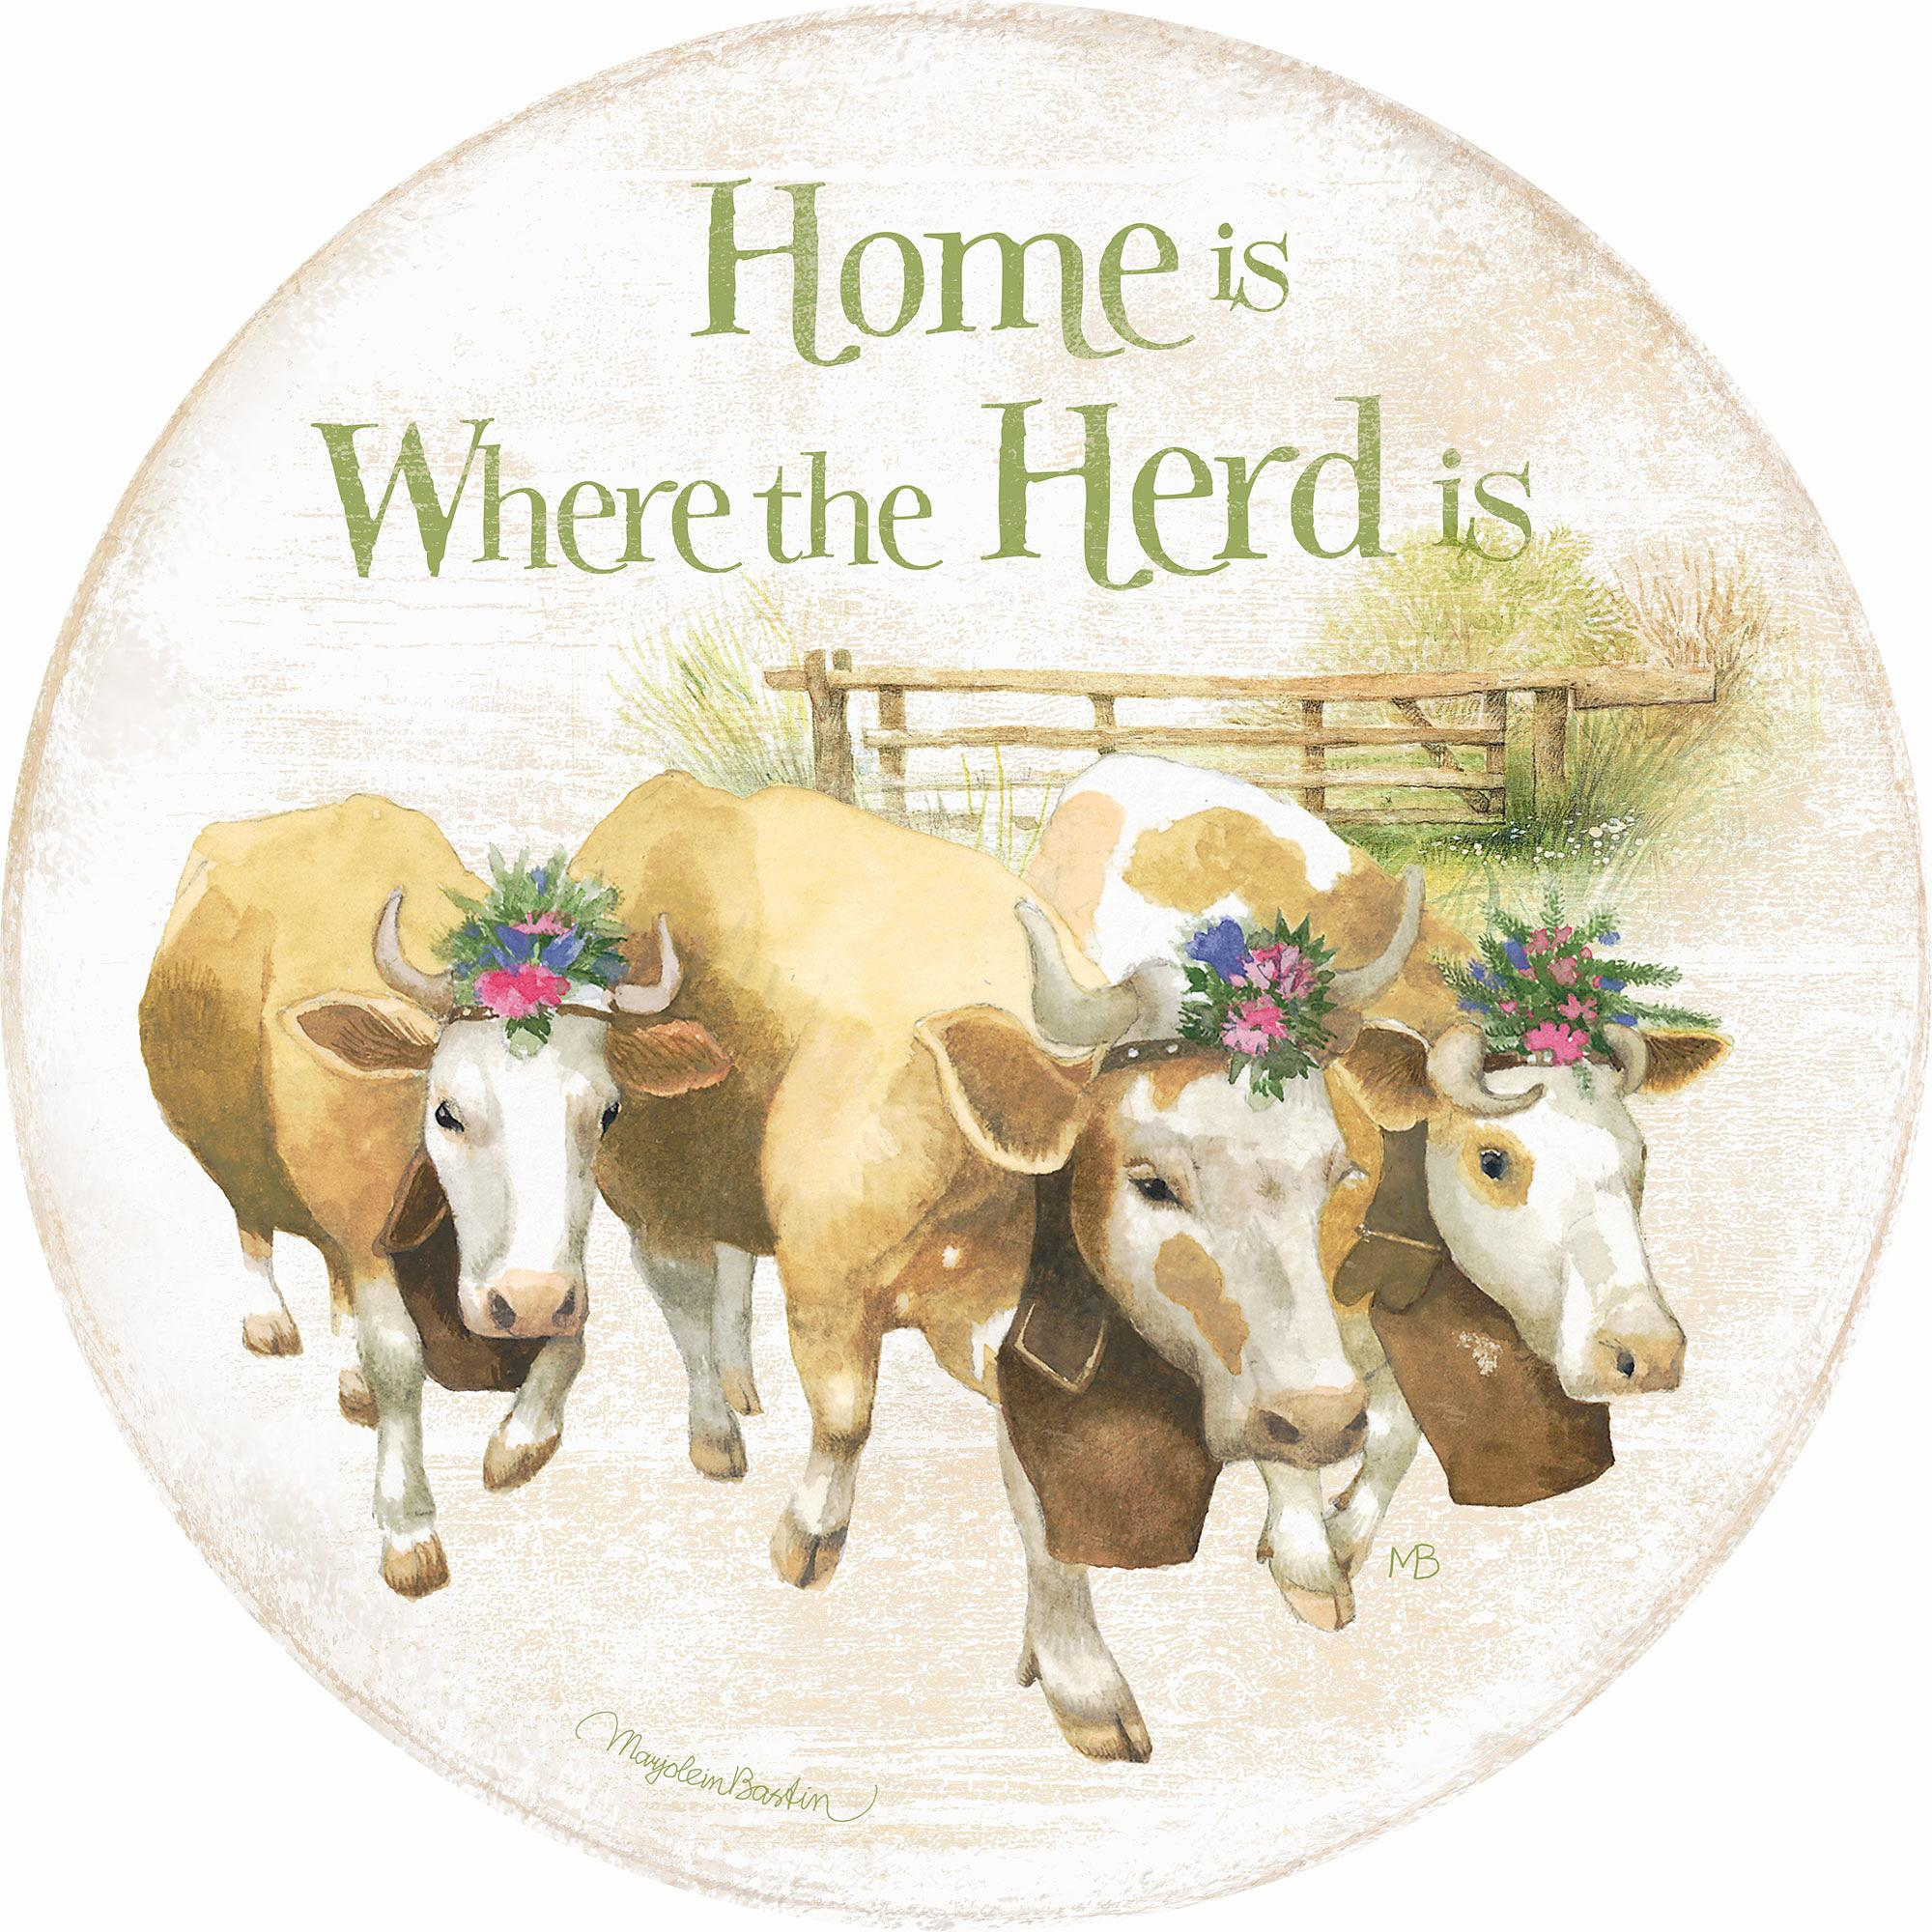 Home is Where the Herd.